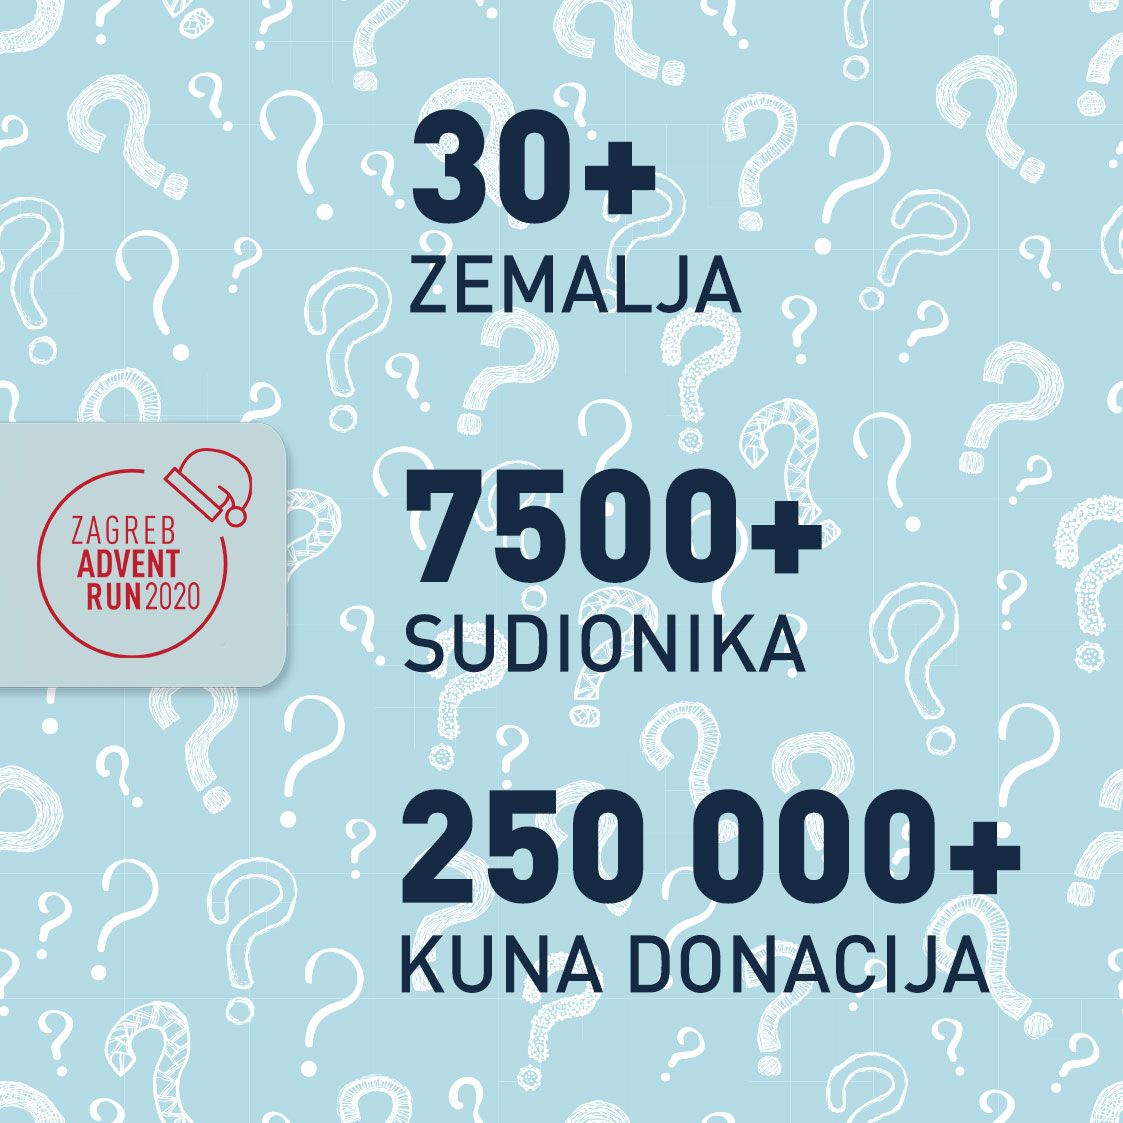 Zagreb Advent Run in numbers